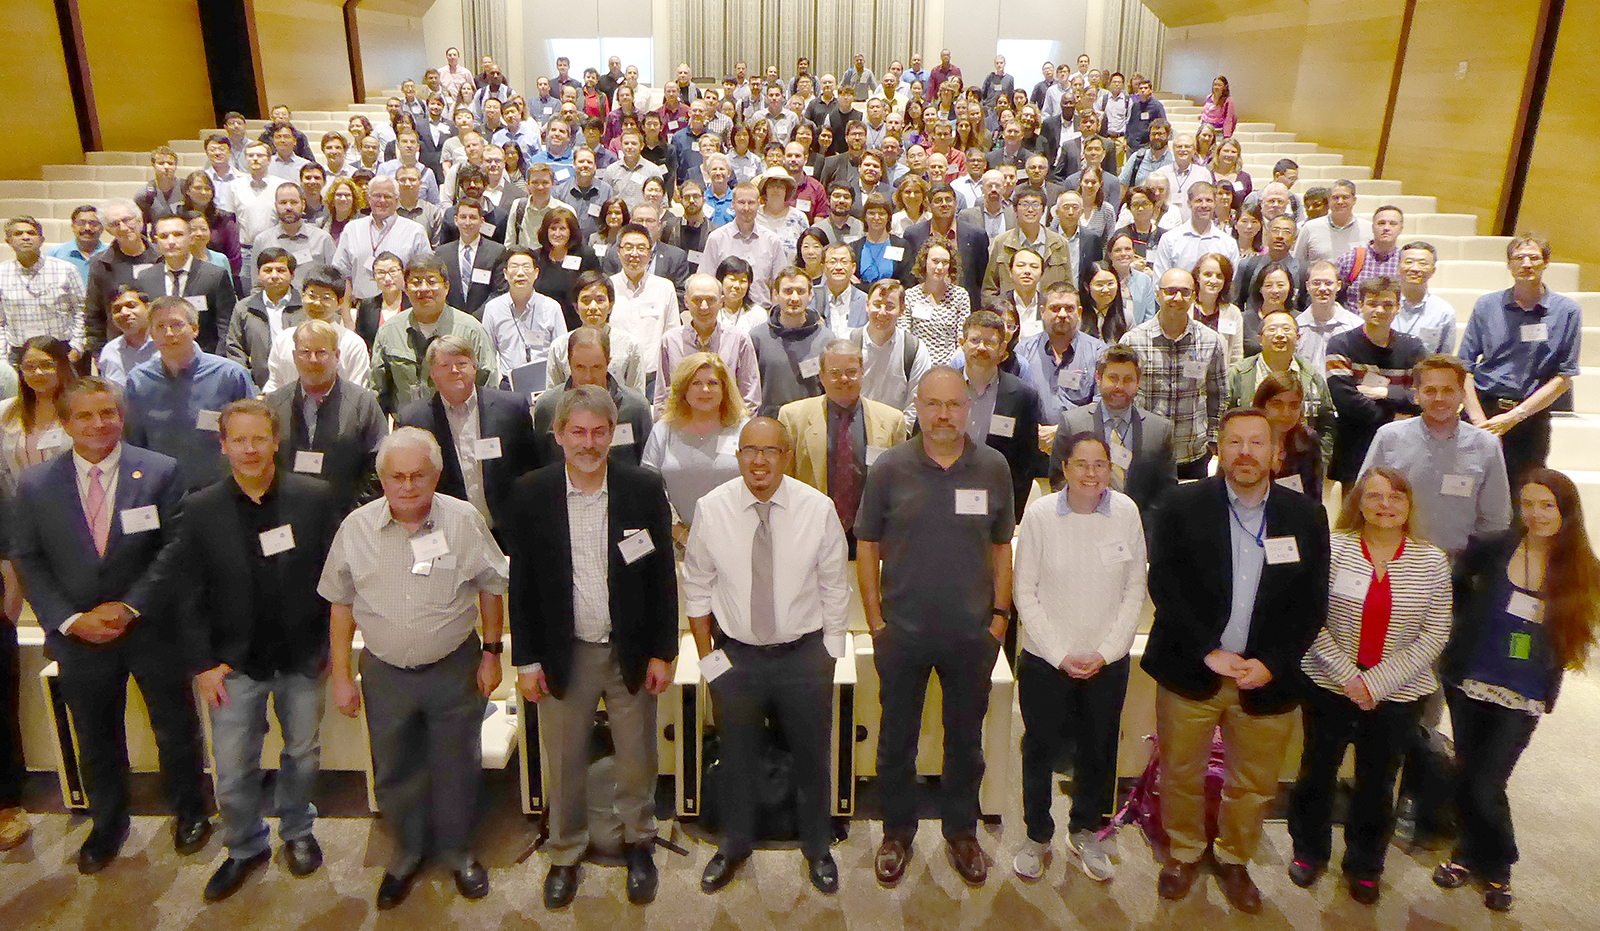 NOAA / NESDIS / STAR - 1st Workshop on Leveraging AI in the